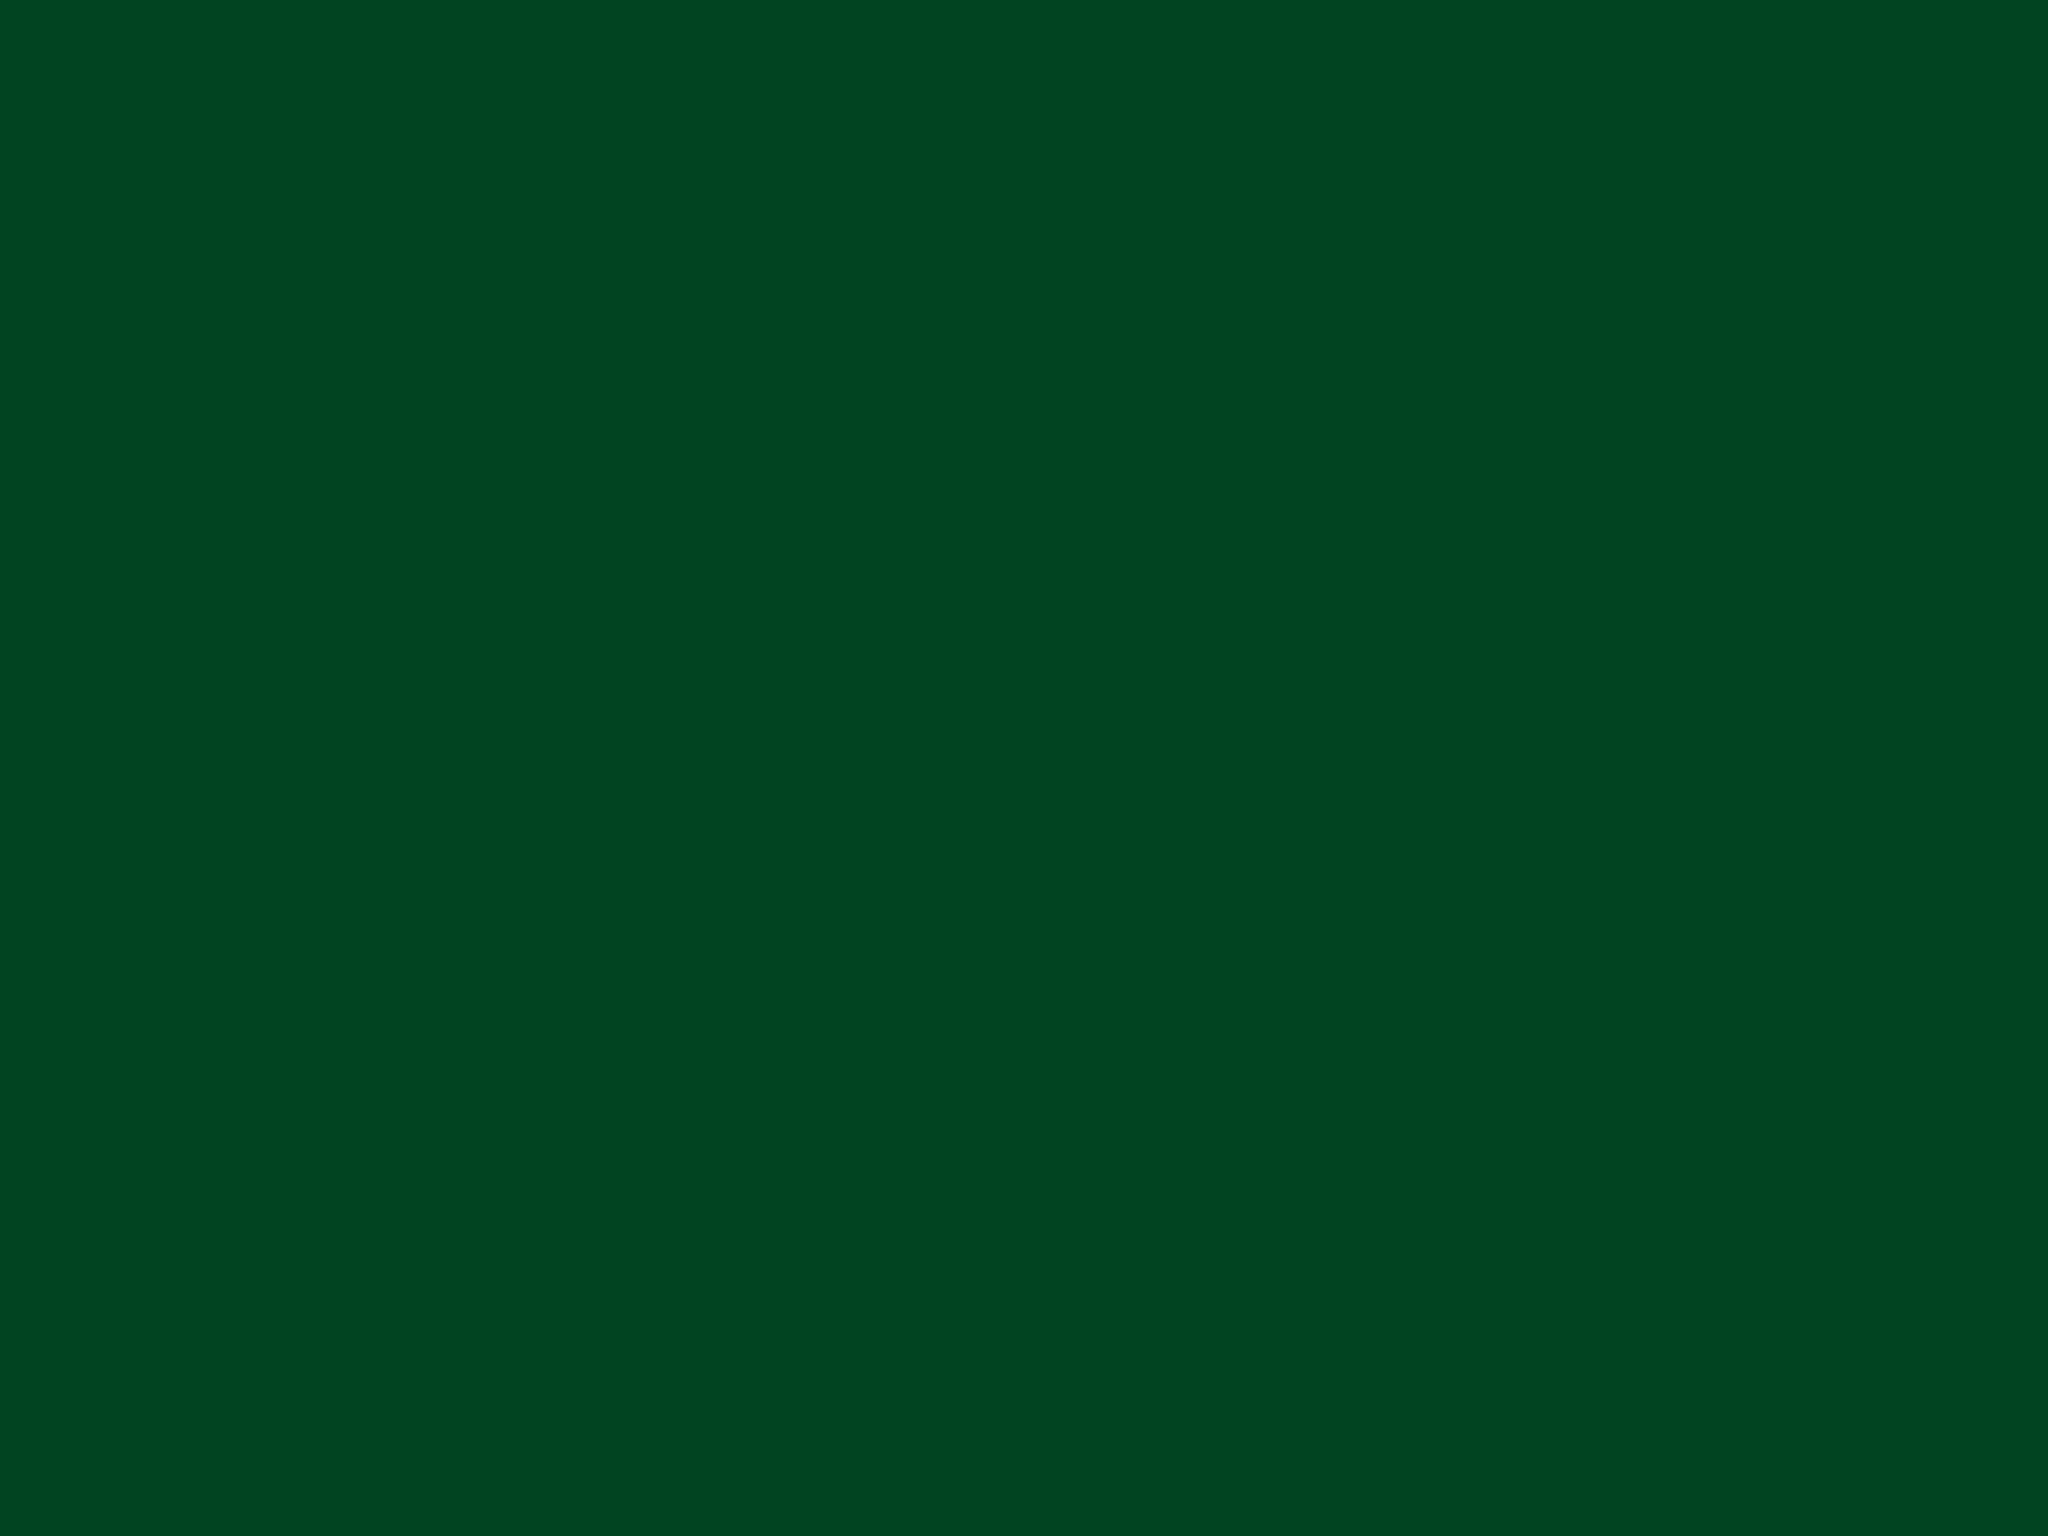 2048x1536 Forest Green Traditional Solid Color Background